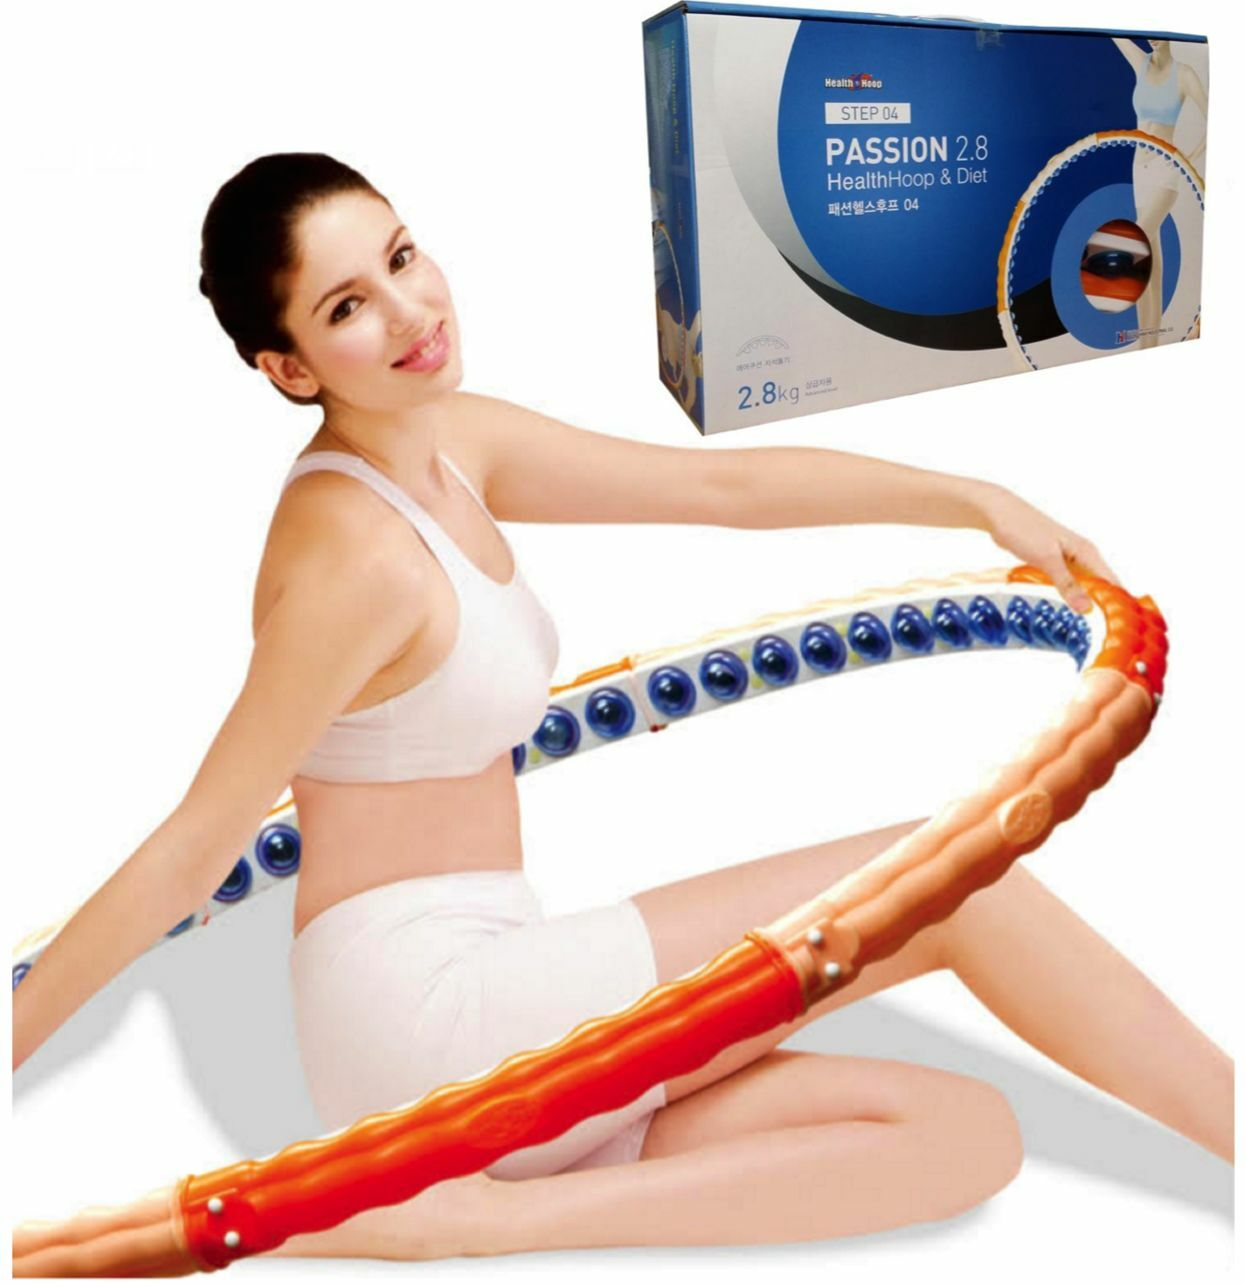 Health Hula Hoop-6.17lb Weighed Magnetic Message Hula Hoop for EXPERT  EXERCISE